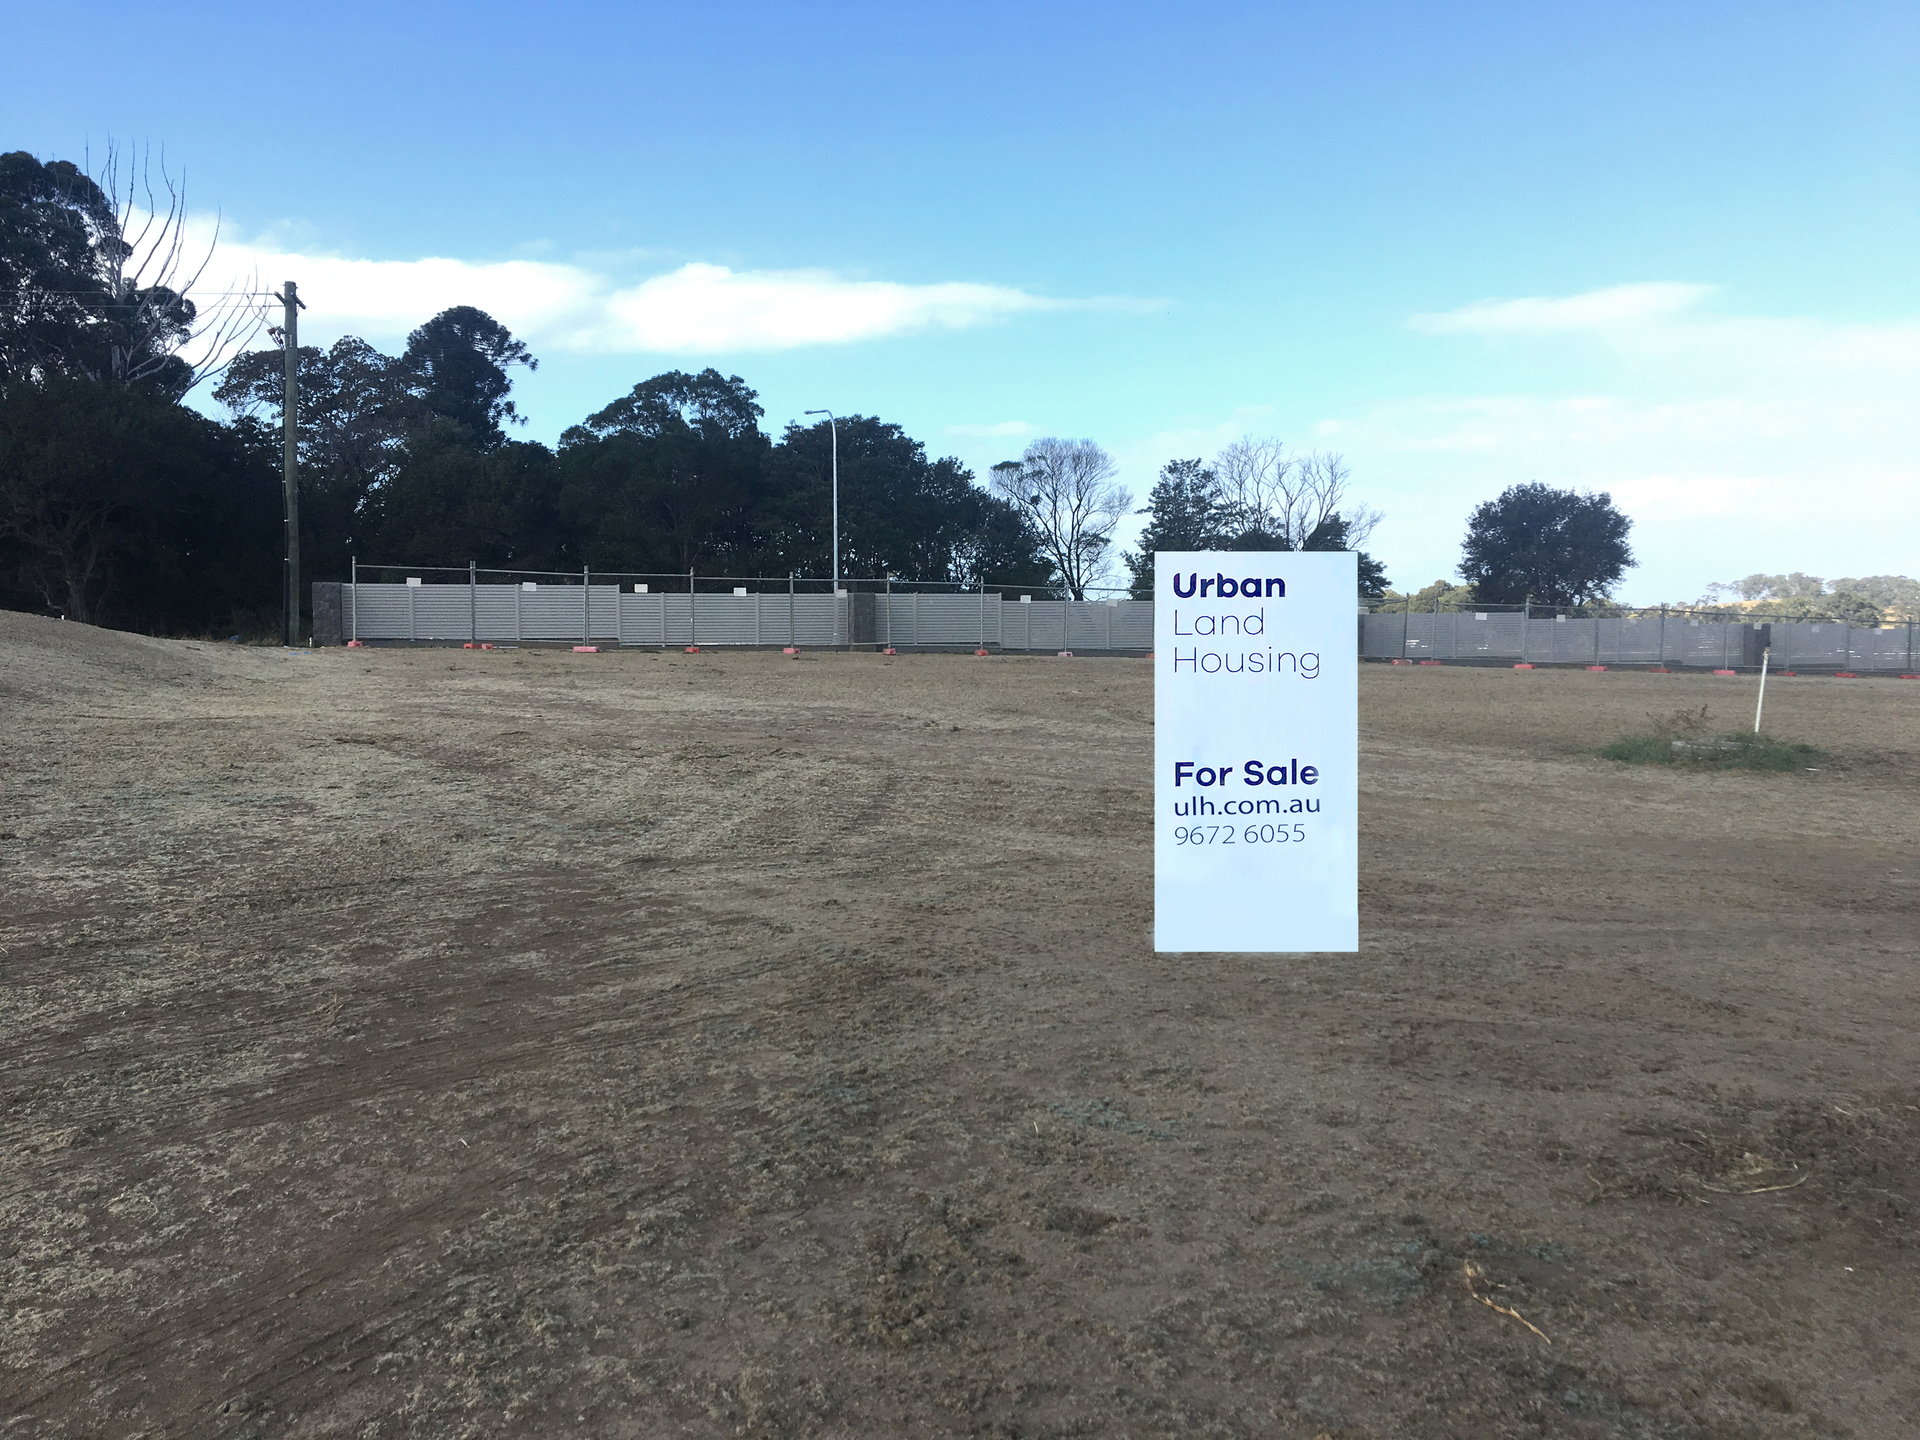 Kembla Grange Lot 116 Saddleback Crescent